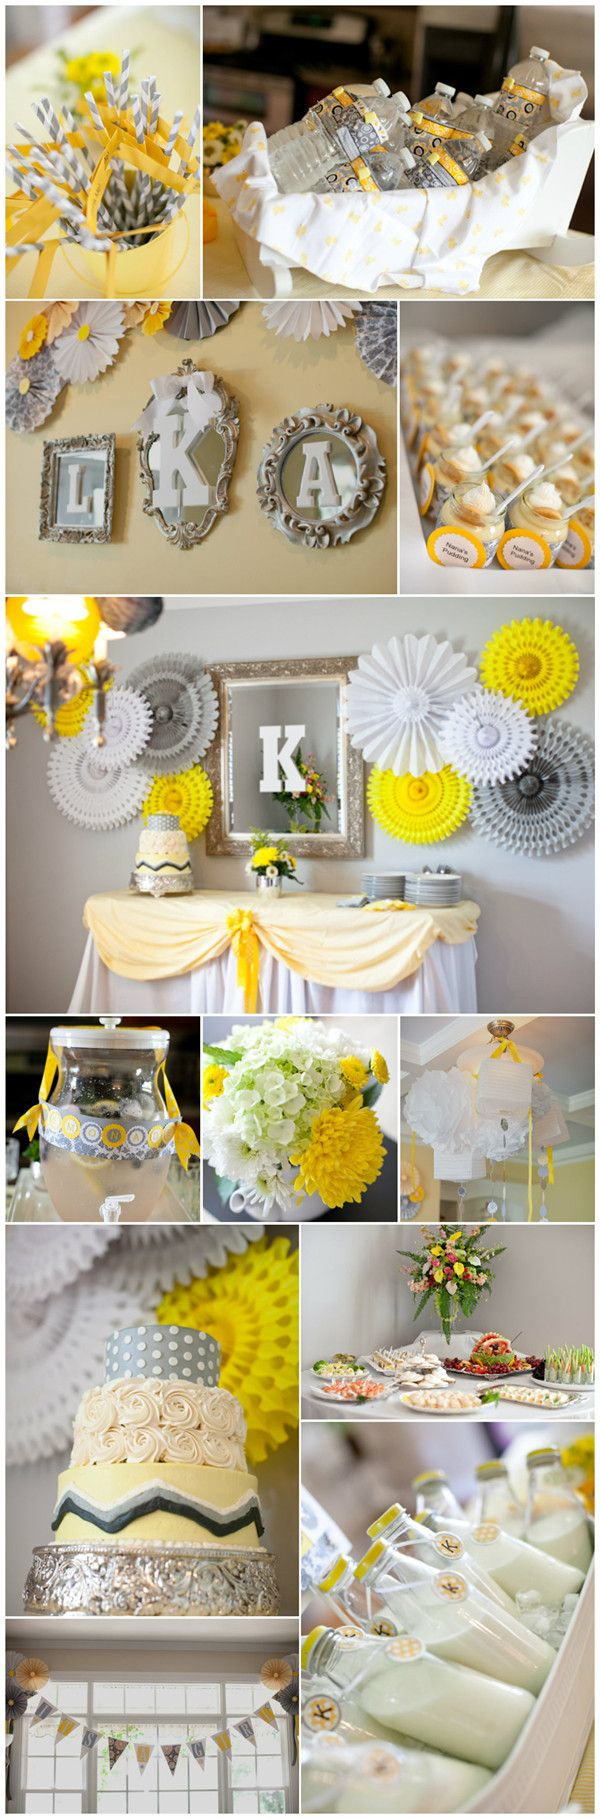 gray and yellow baby shower...switch yellow with mint green